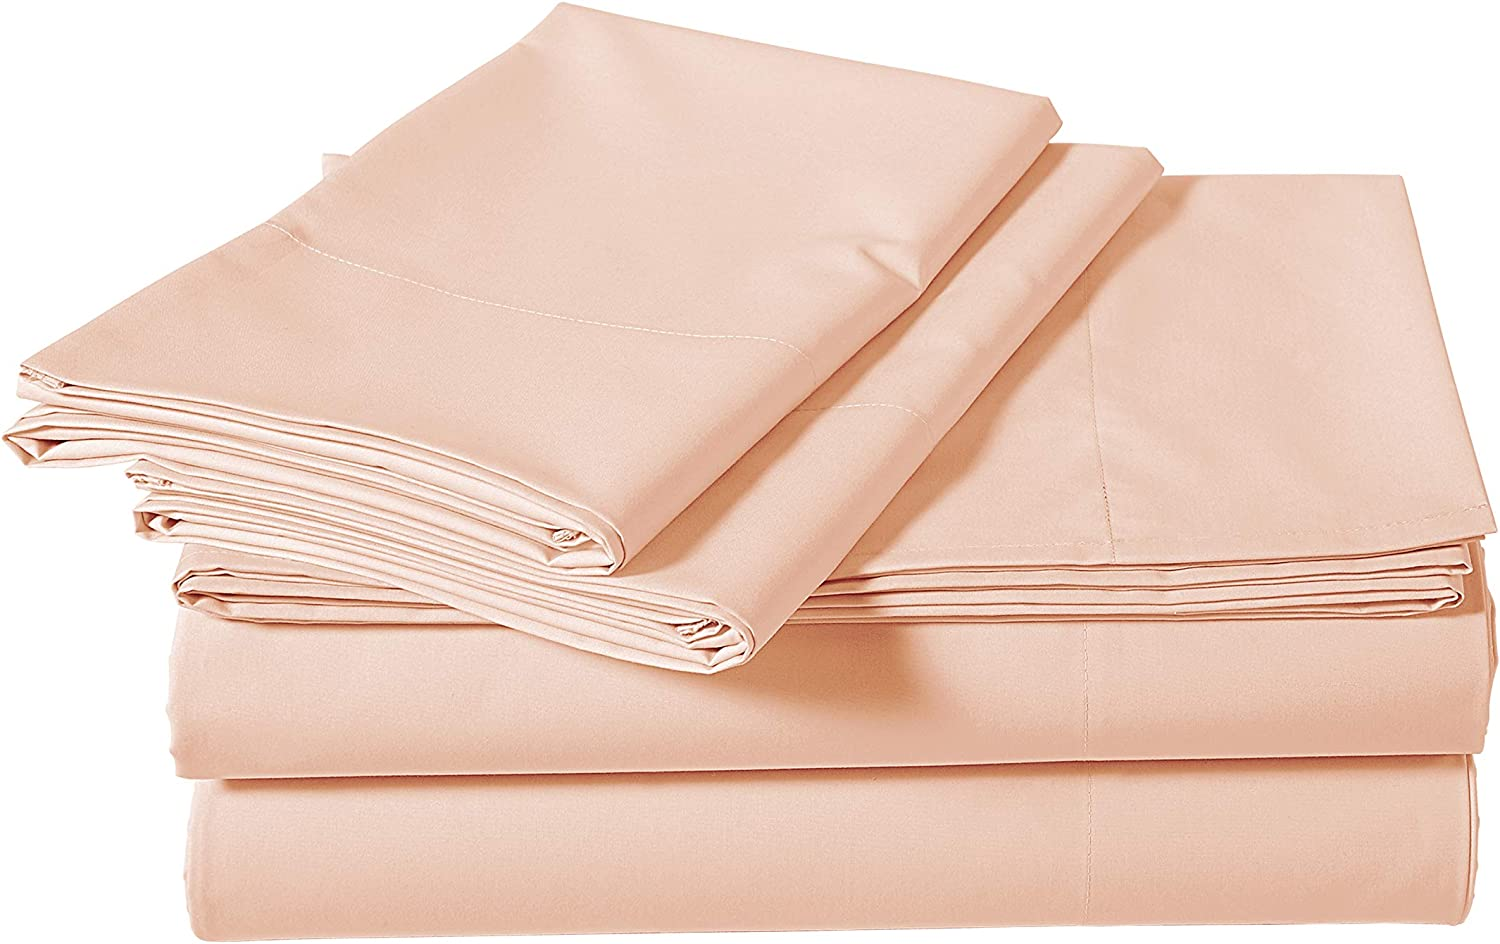 AmazonBasics Super-Soft Sateen 400 Thread Count Cotton Sheet Set - King, Pink Pastel